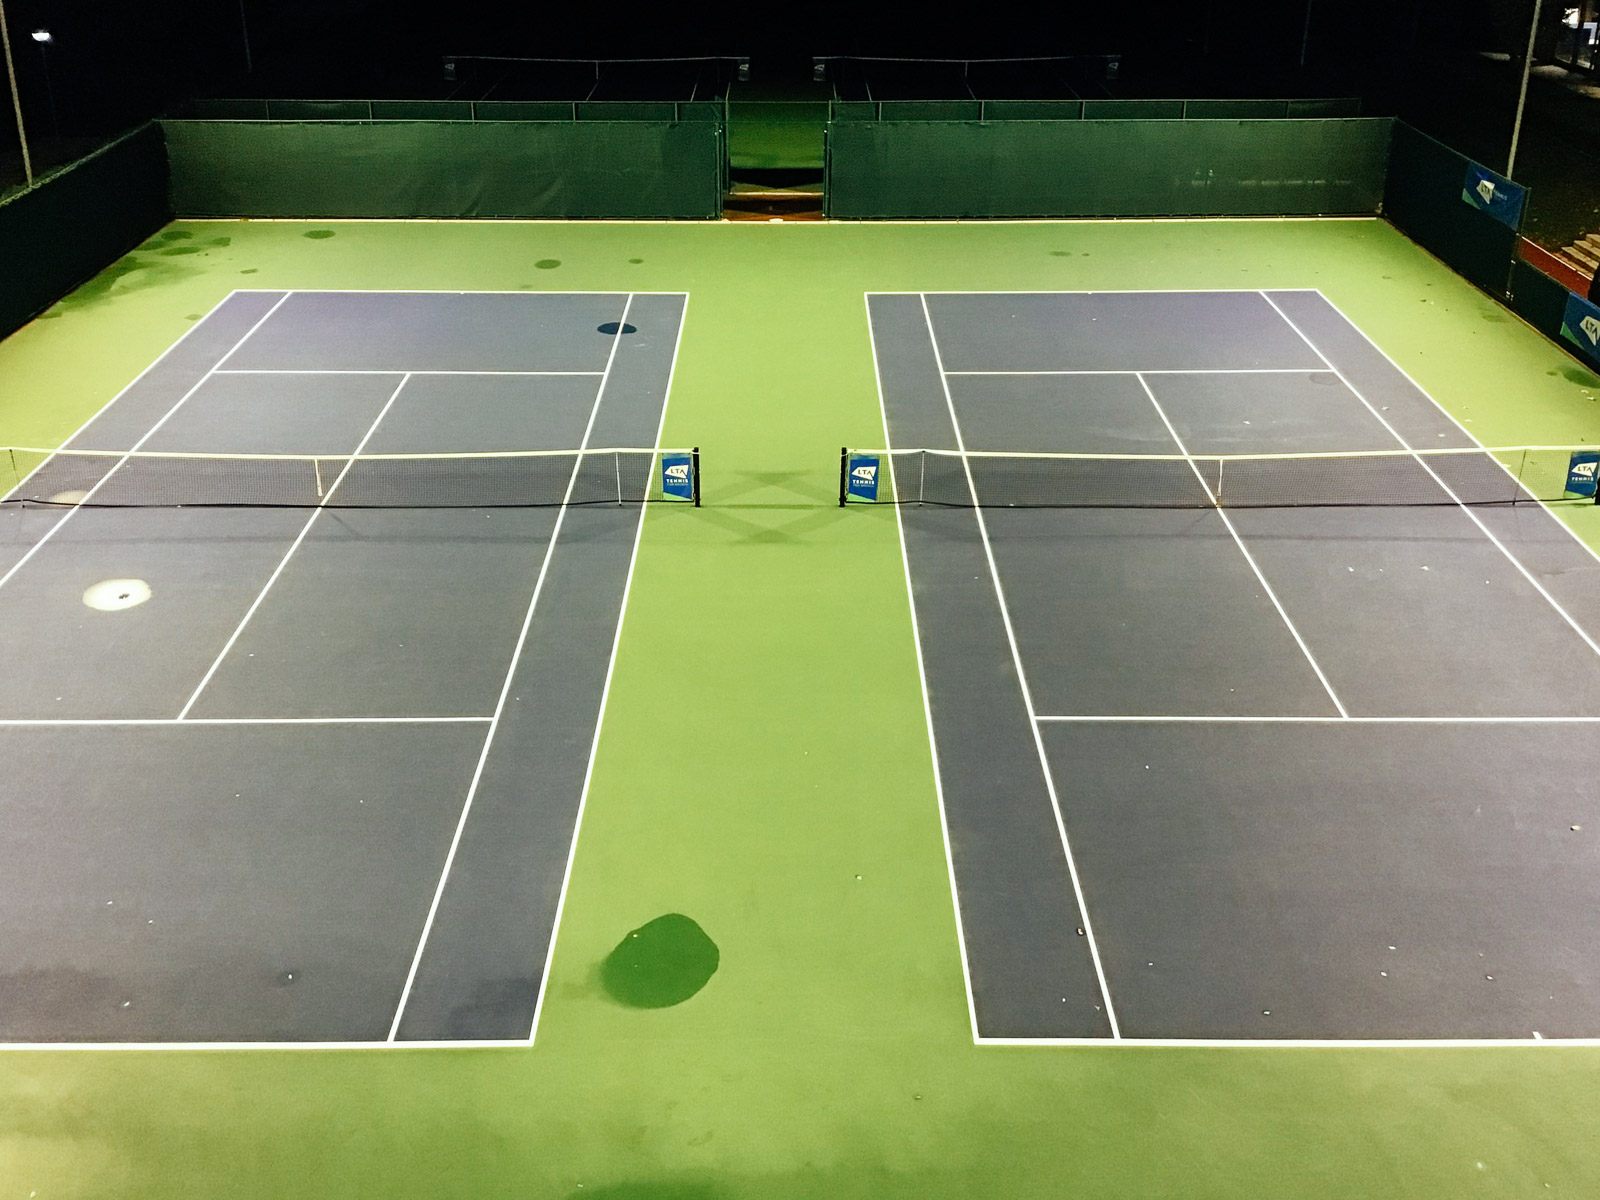 Floodlight upgrades at Roehampton outdoor courts